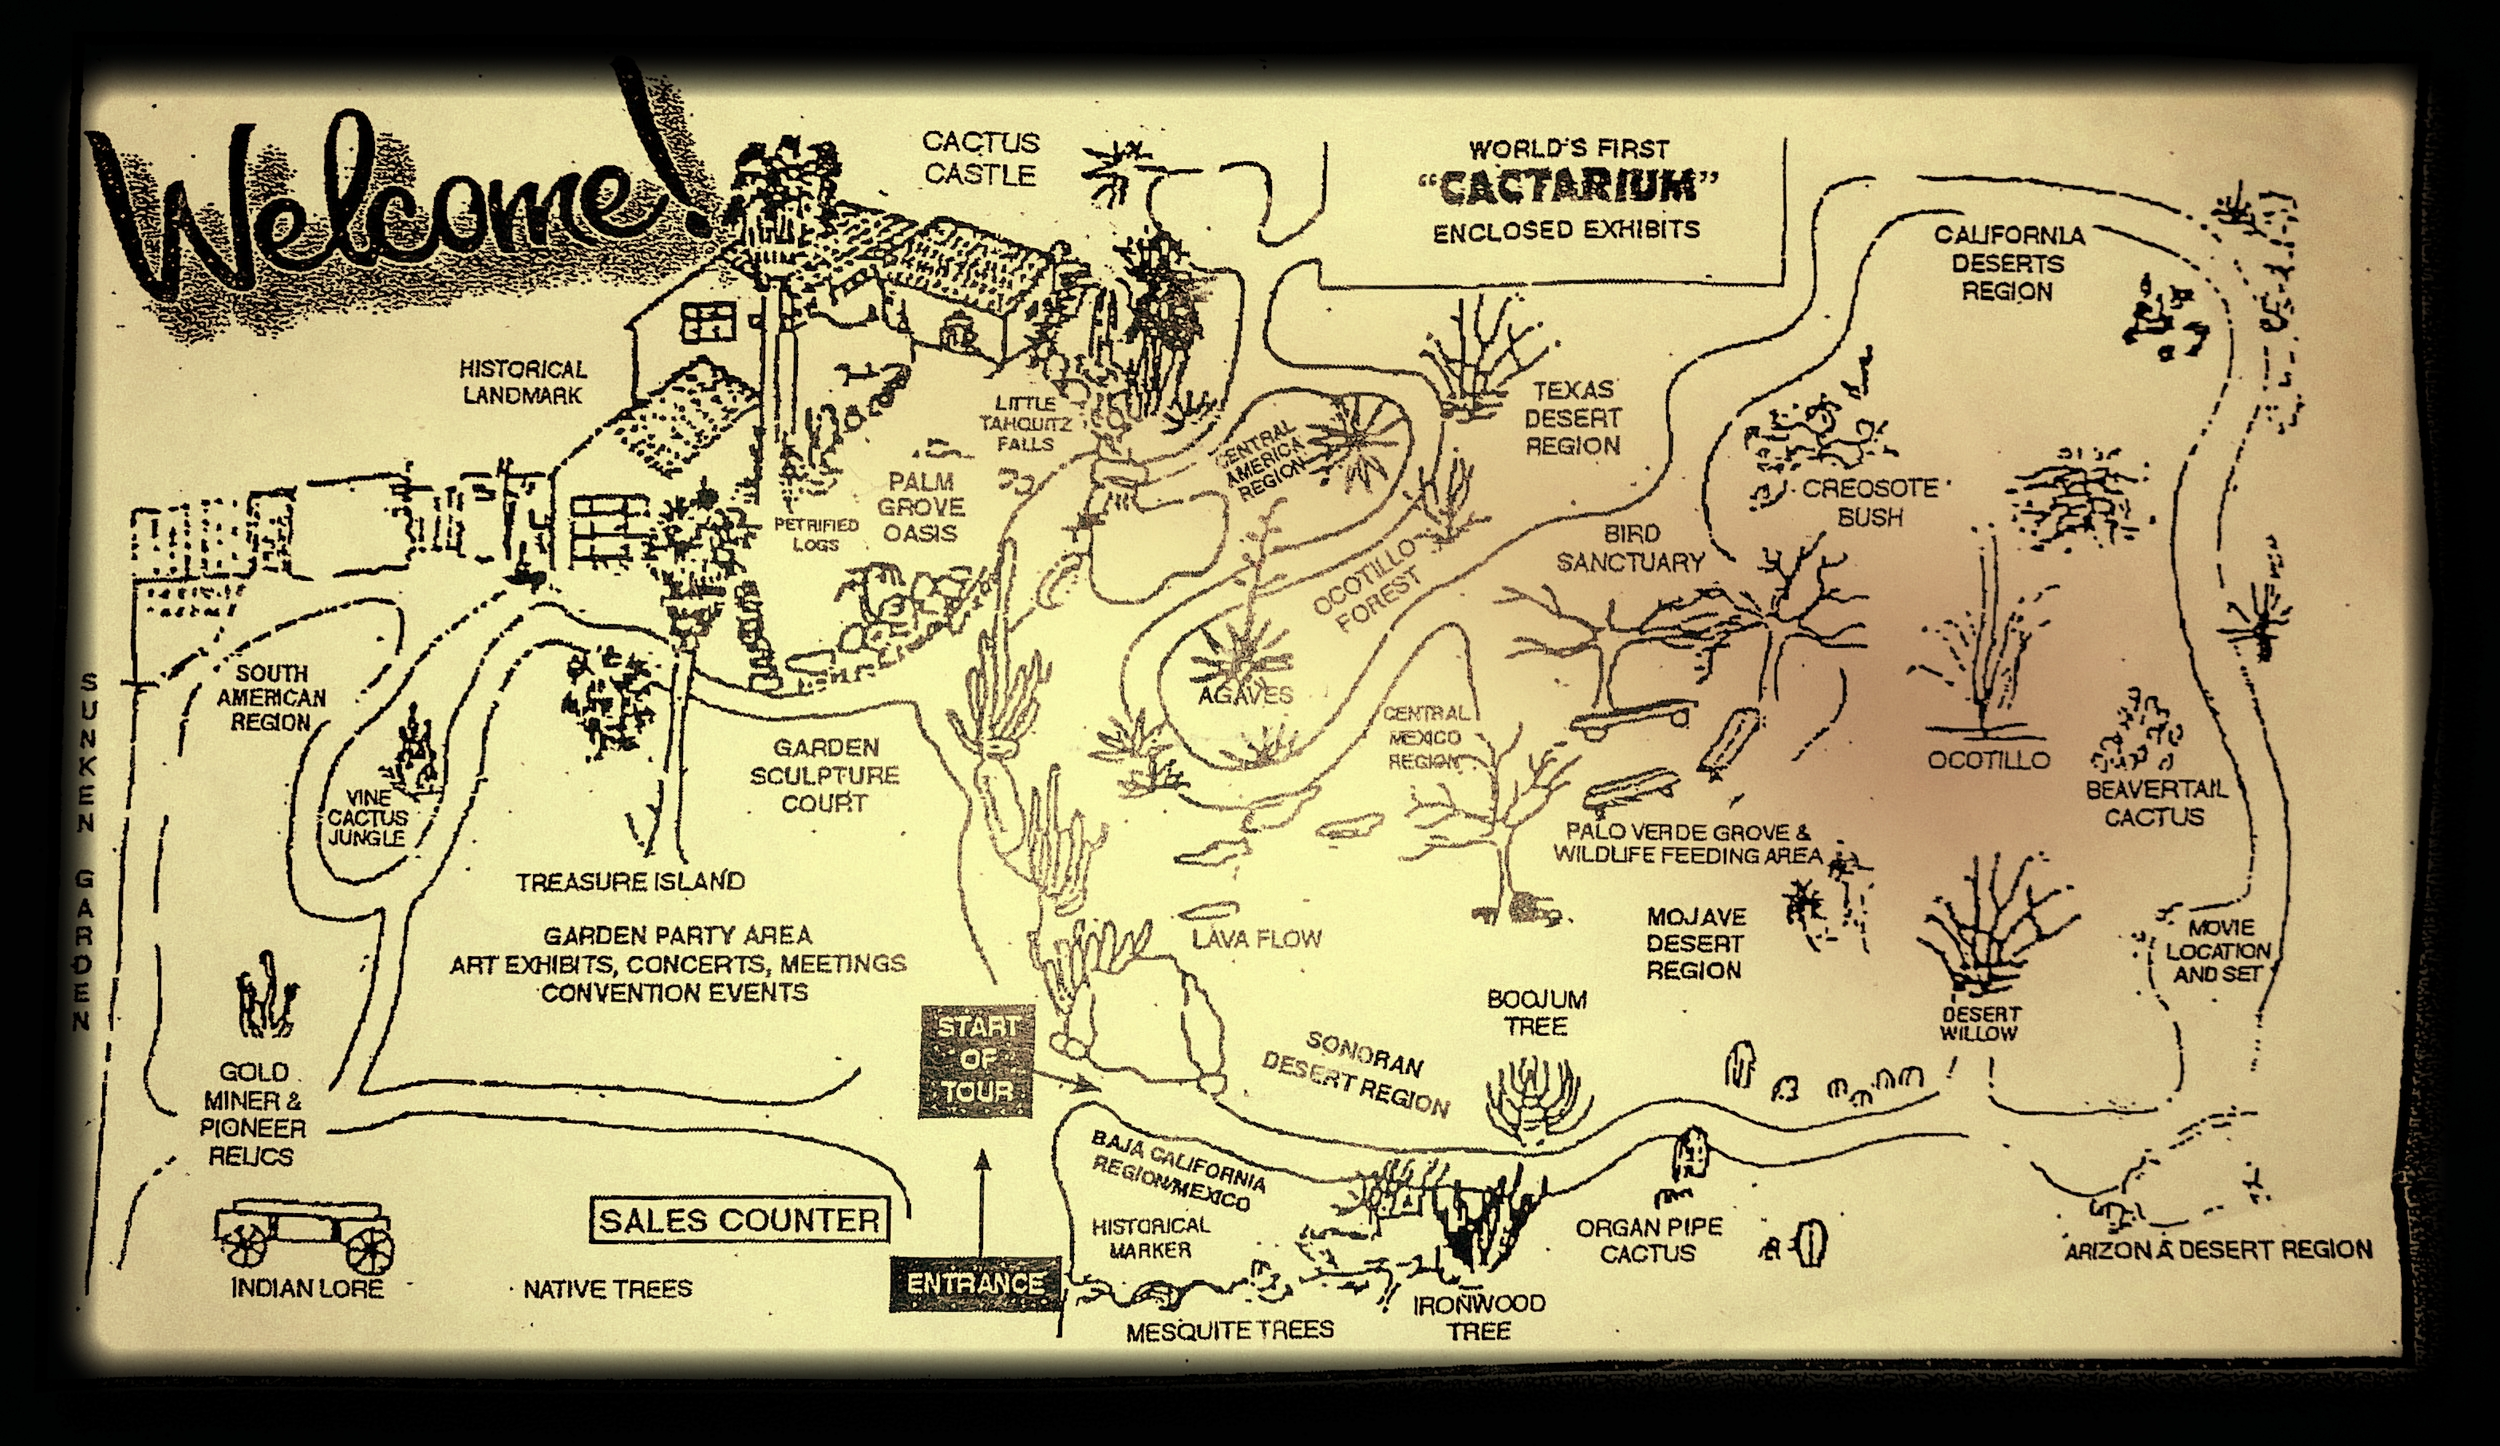 A map of Moorten's Botanical Garden and Cactarium. Visitors should begin the nature trail in the Baja California Region.